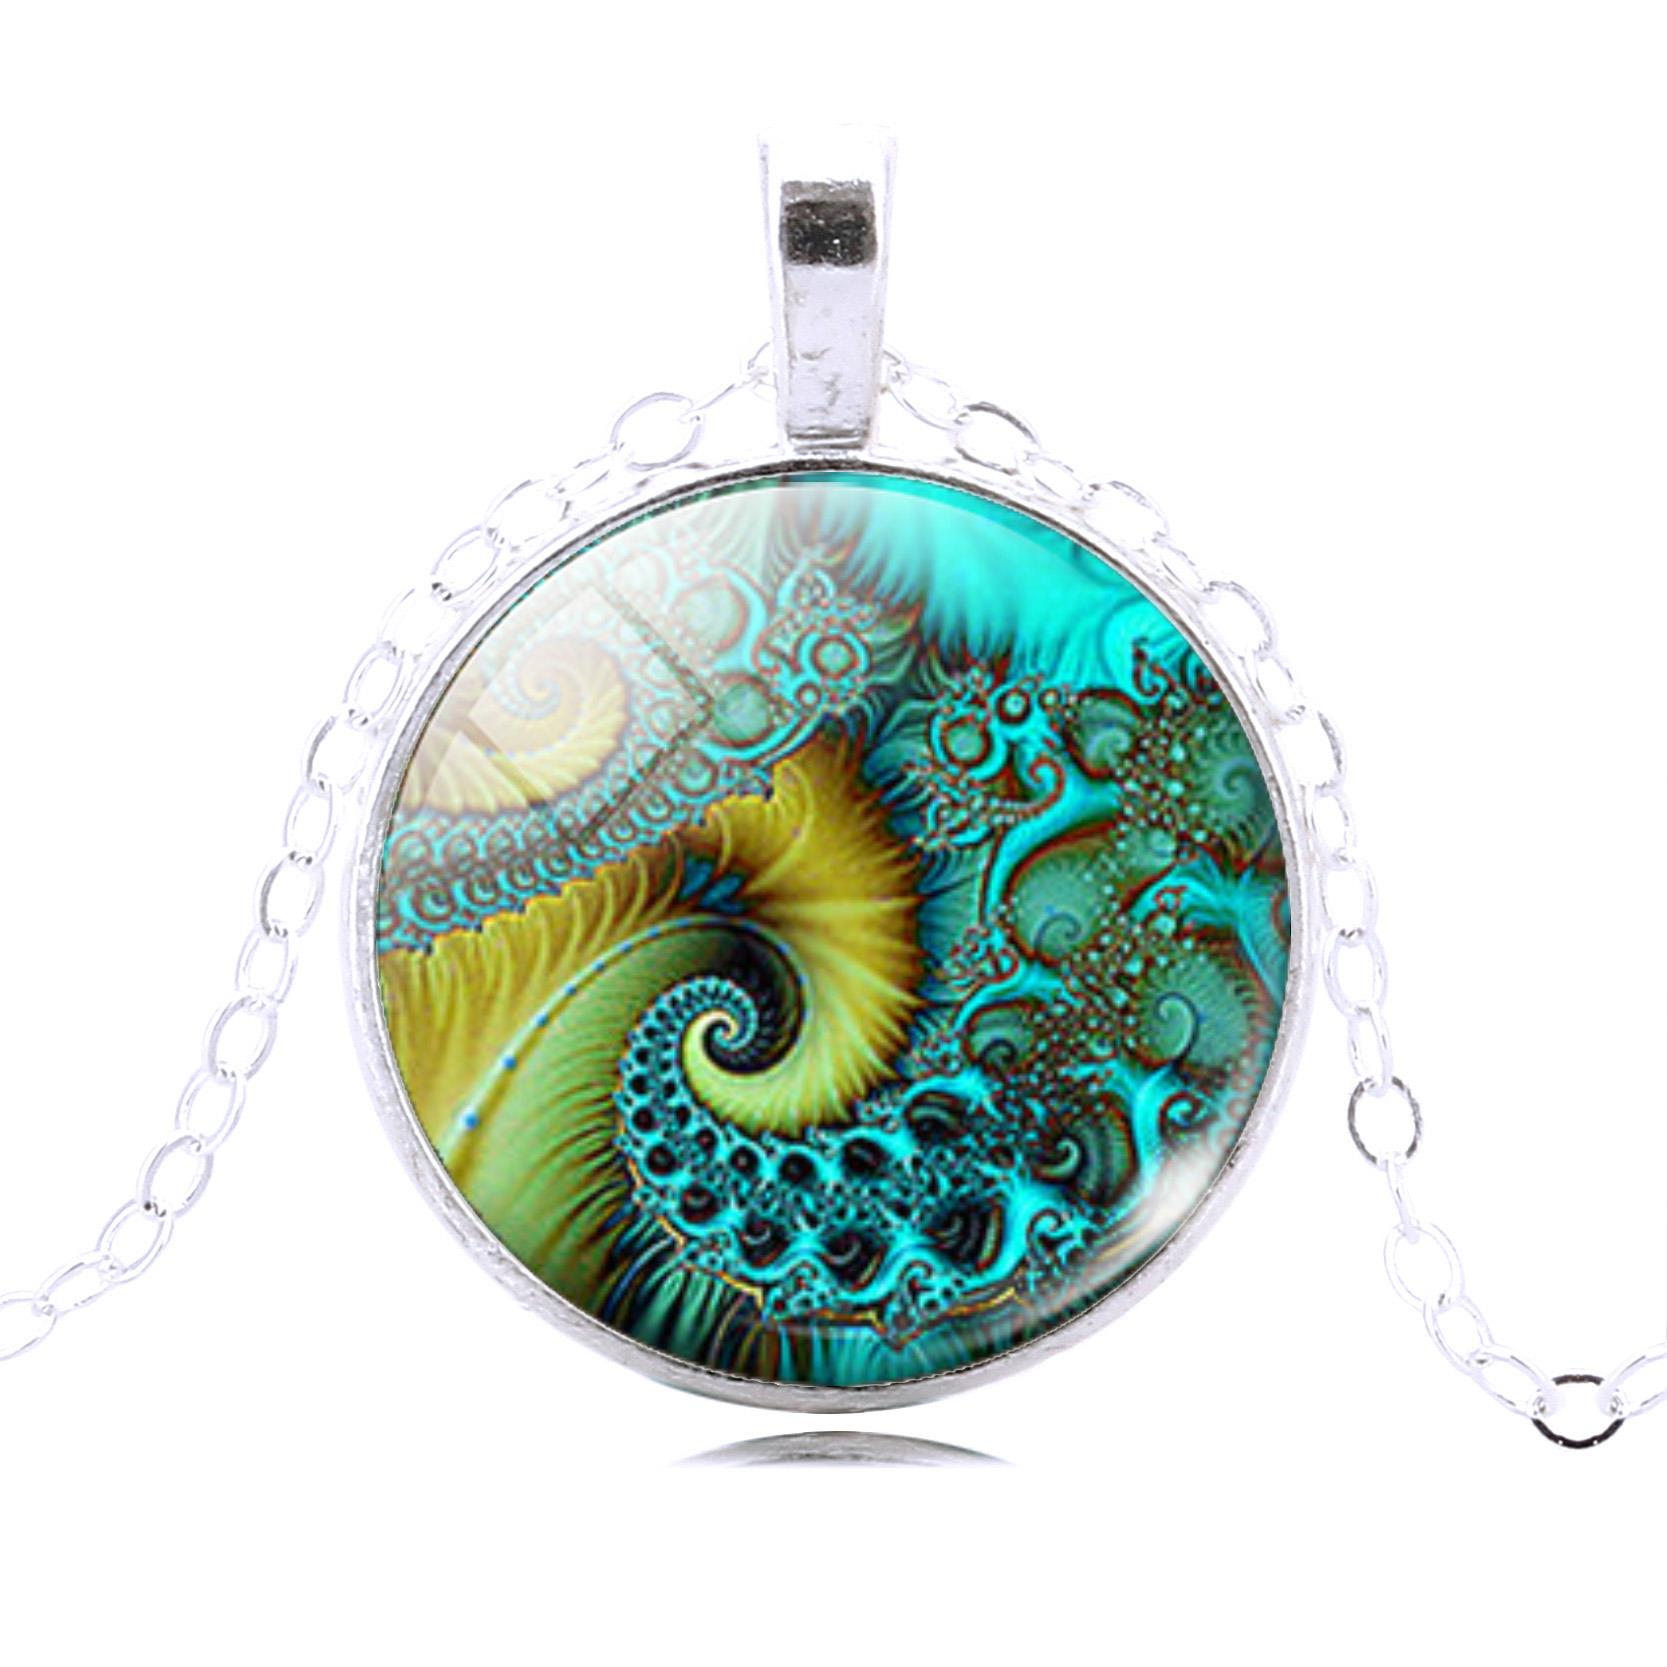 FIBONACCI Spiral Pendant Necklace Fractal Necklace Sacred Geometry Necklace Fashion Sterling Silver Statement Chain Necklace(China (Mainland))